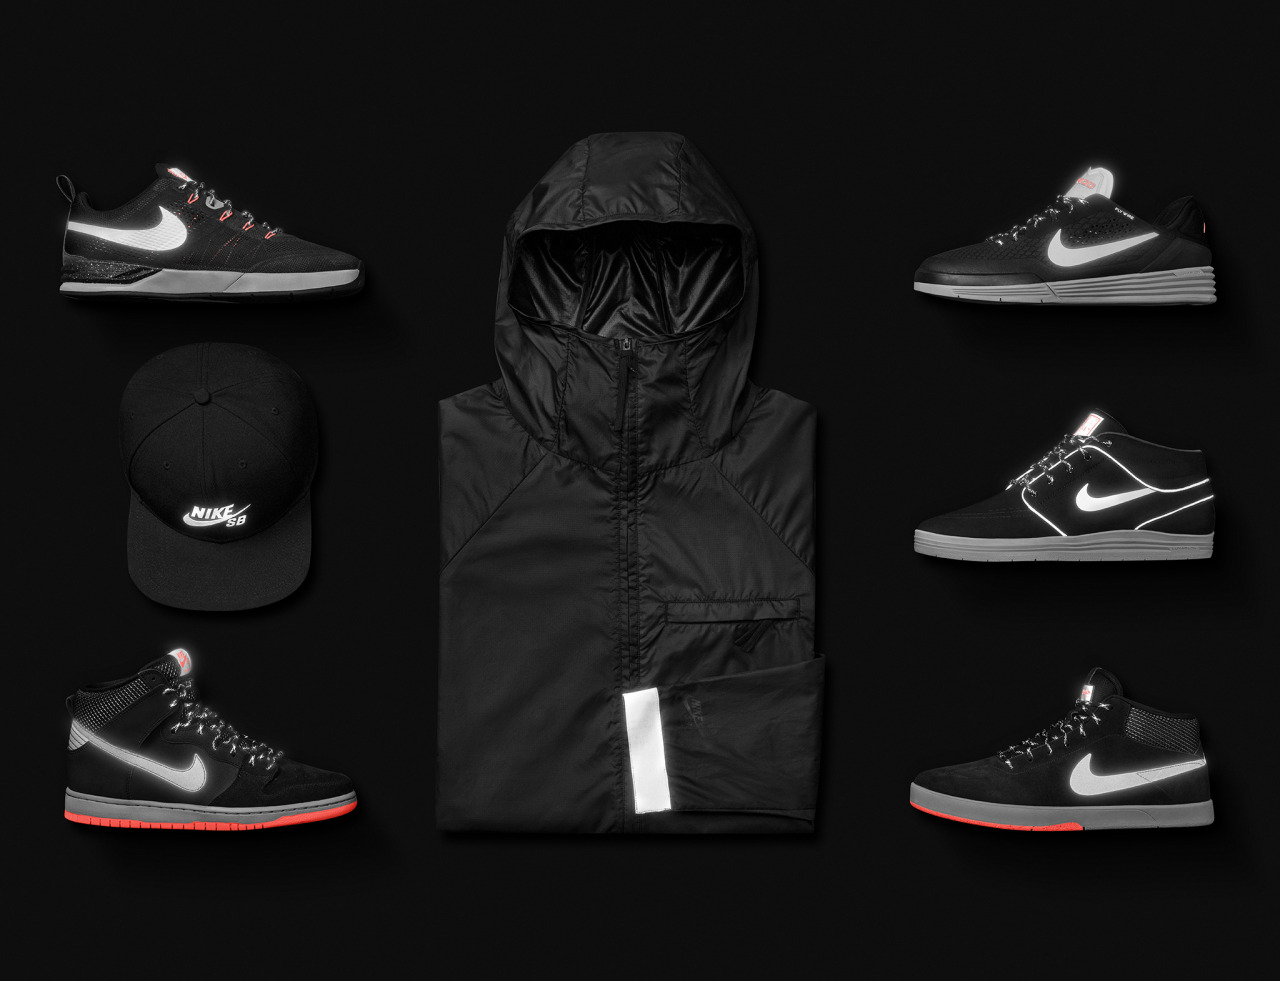 Get all the details on the Nike SB Flash Pack here.